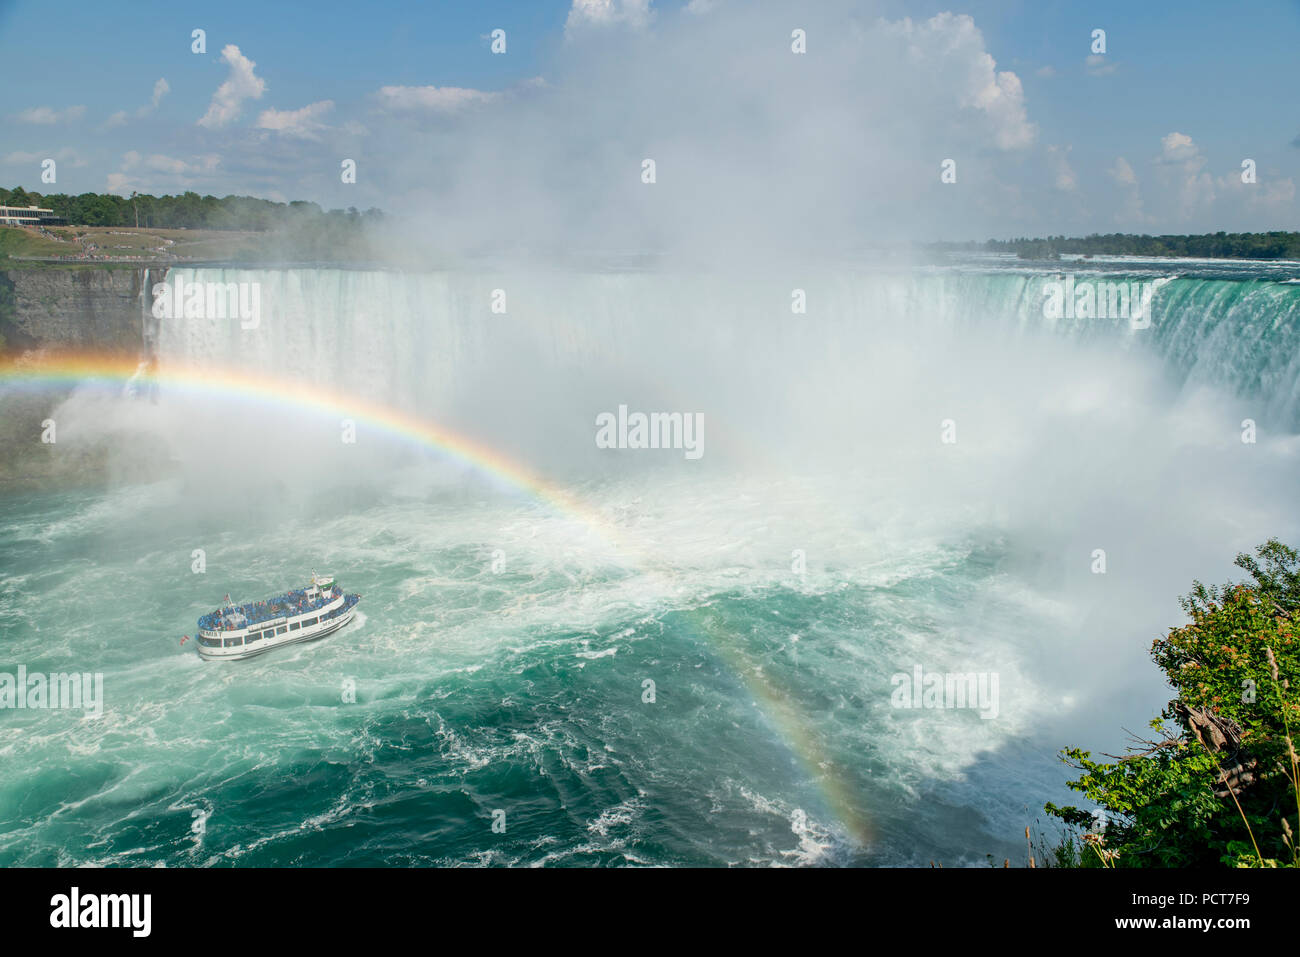 Niagara Falls Ontario Canada View From Canadian Side Of Horseshoe Falls In Summer And Tour Boat Maid Of The Mist Under A Rainbow On Niagara River Stock Photo Alamy